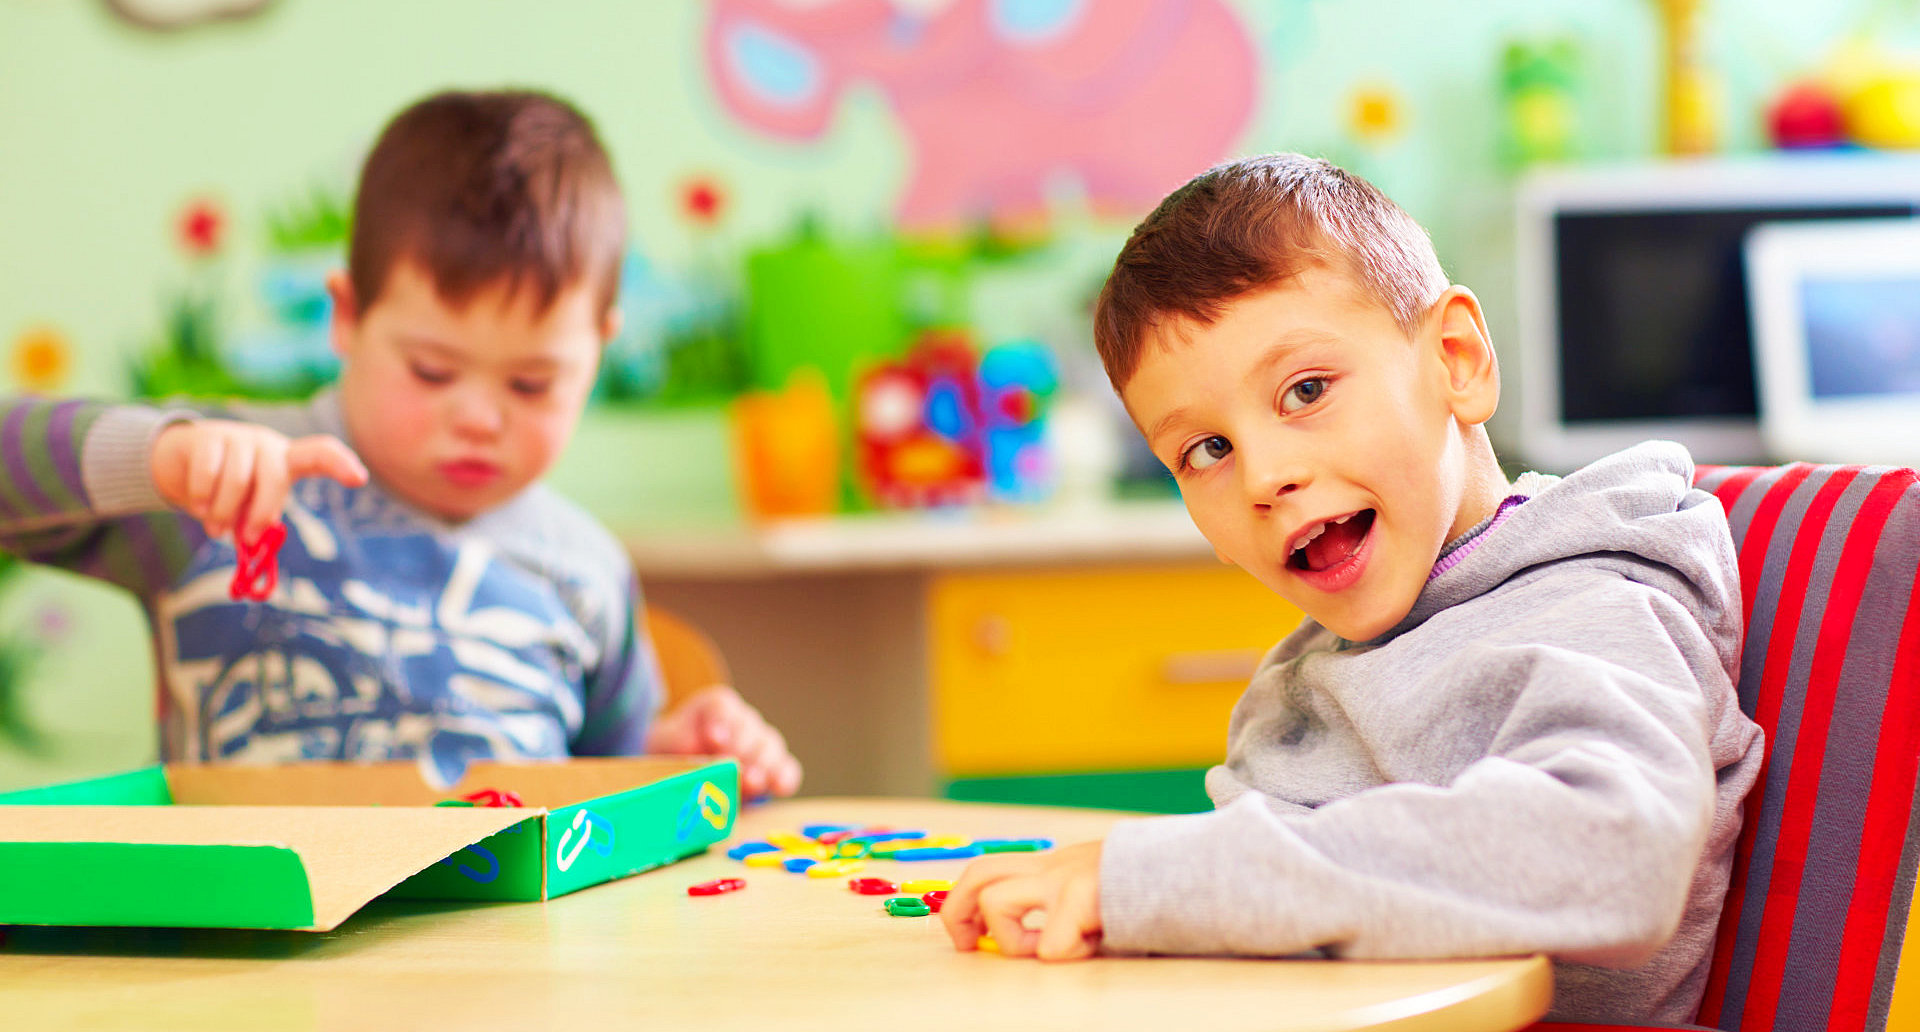 cute kids with special needs playing with developing toys while sitting at the desk